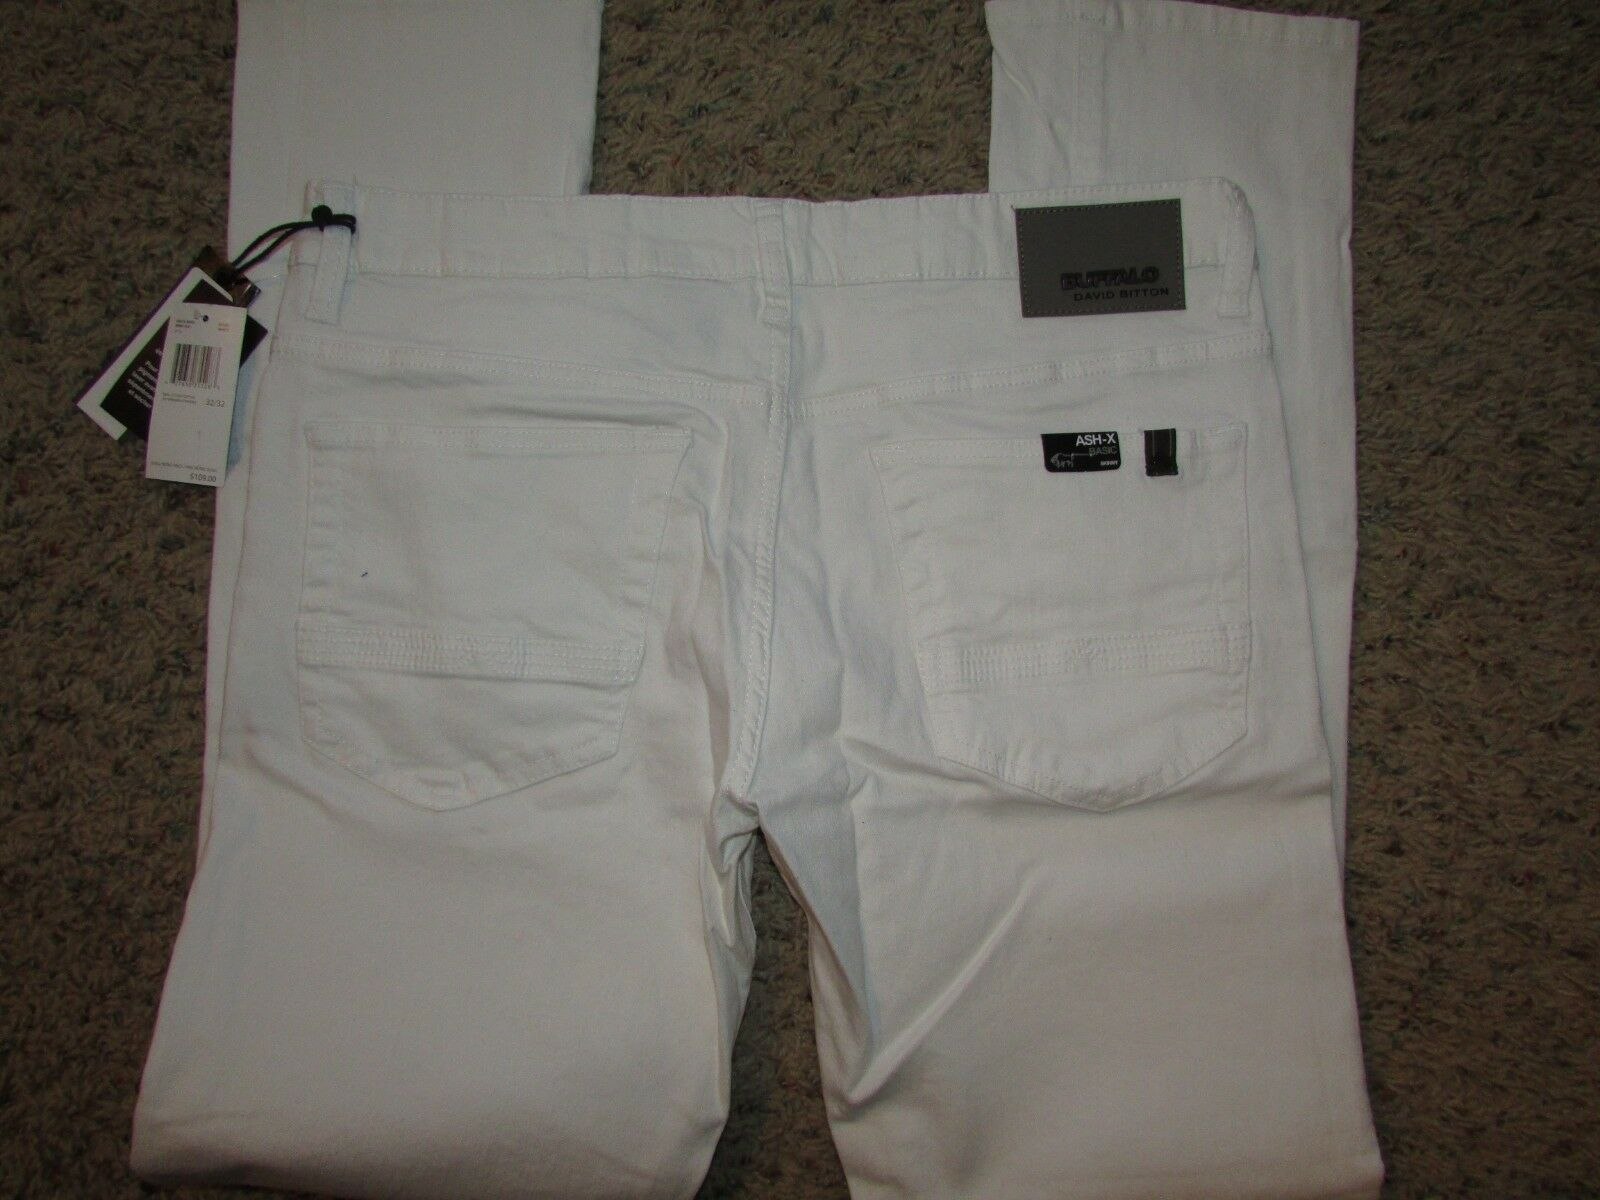 NEW BUFFALO ASH-X WHITE SKINNY JEANS MENS 32X32 COTTON BLEND